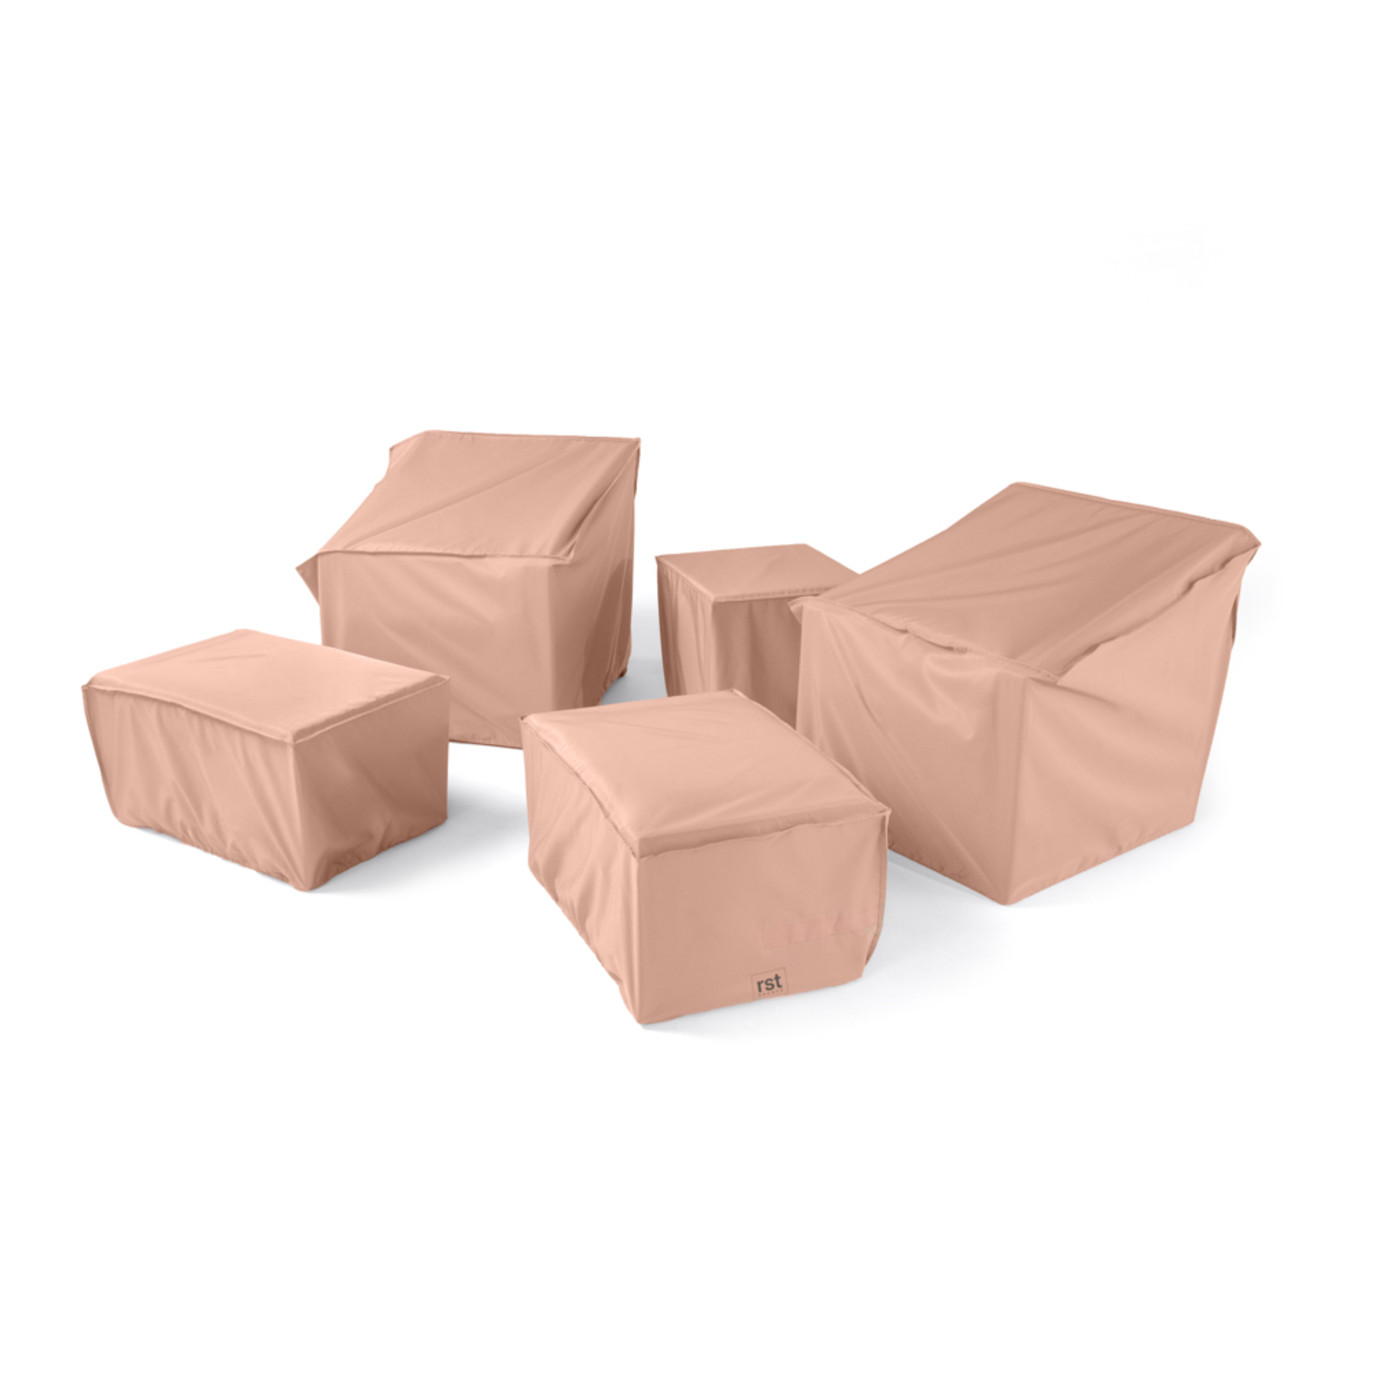 Modular Outdoor 5pc Club Furniture Cover Set